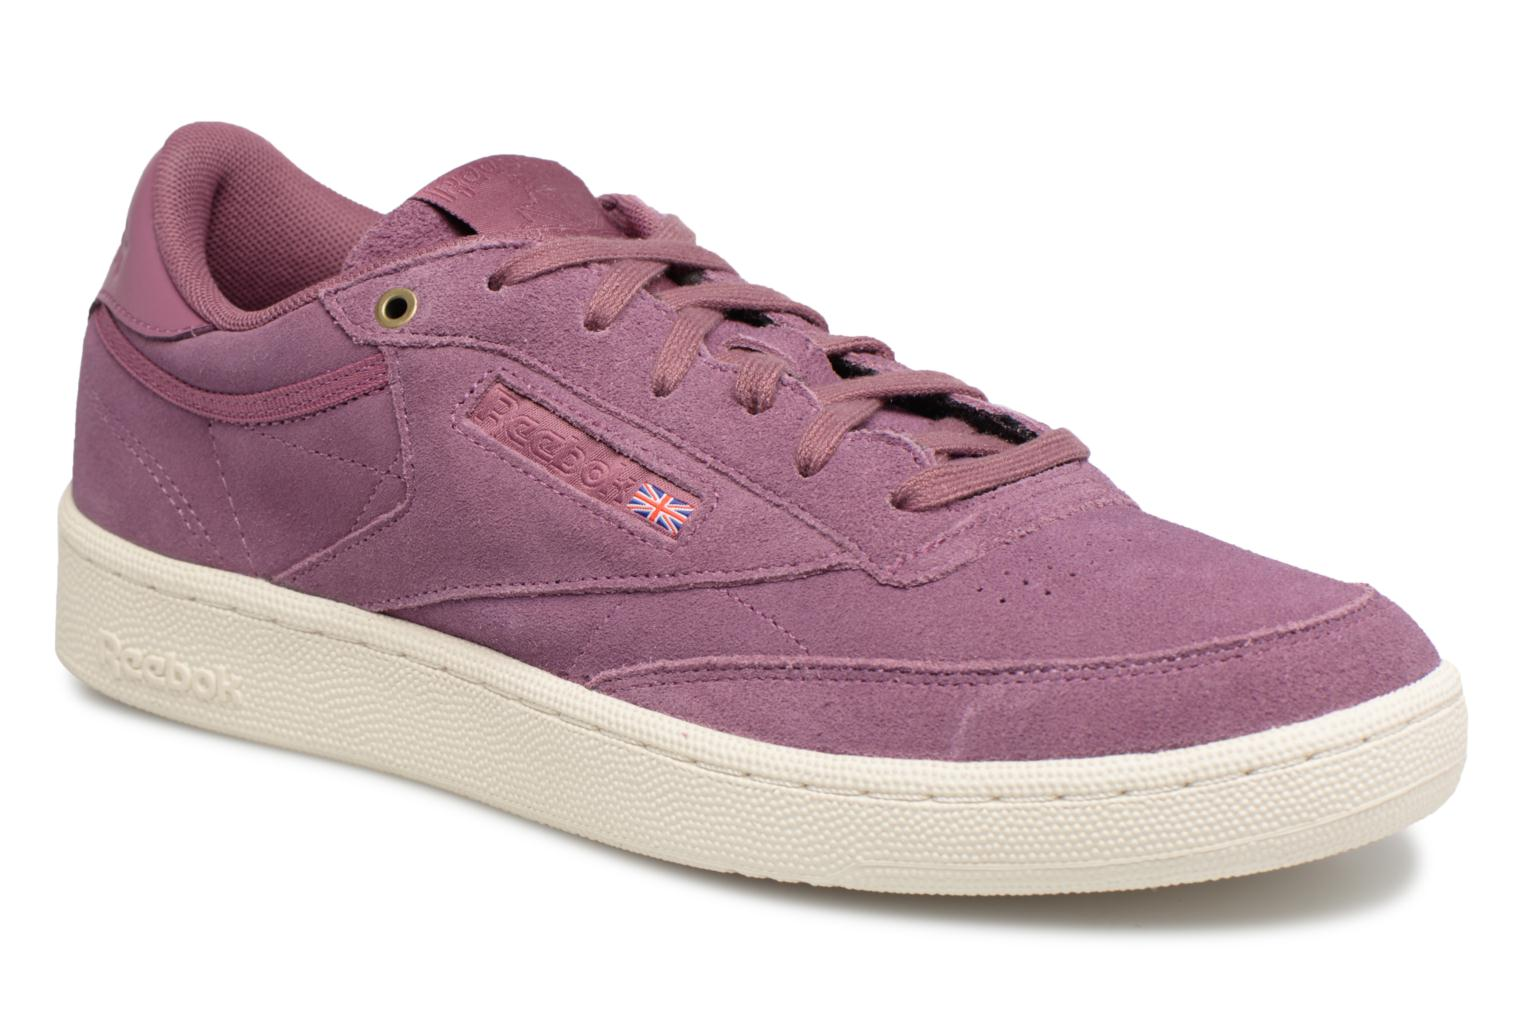 9a9067898e4b2 ... Trainers Reebok Club C 85 Montana Cans Collaboration Purple detailed  view Pair view  womens ...